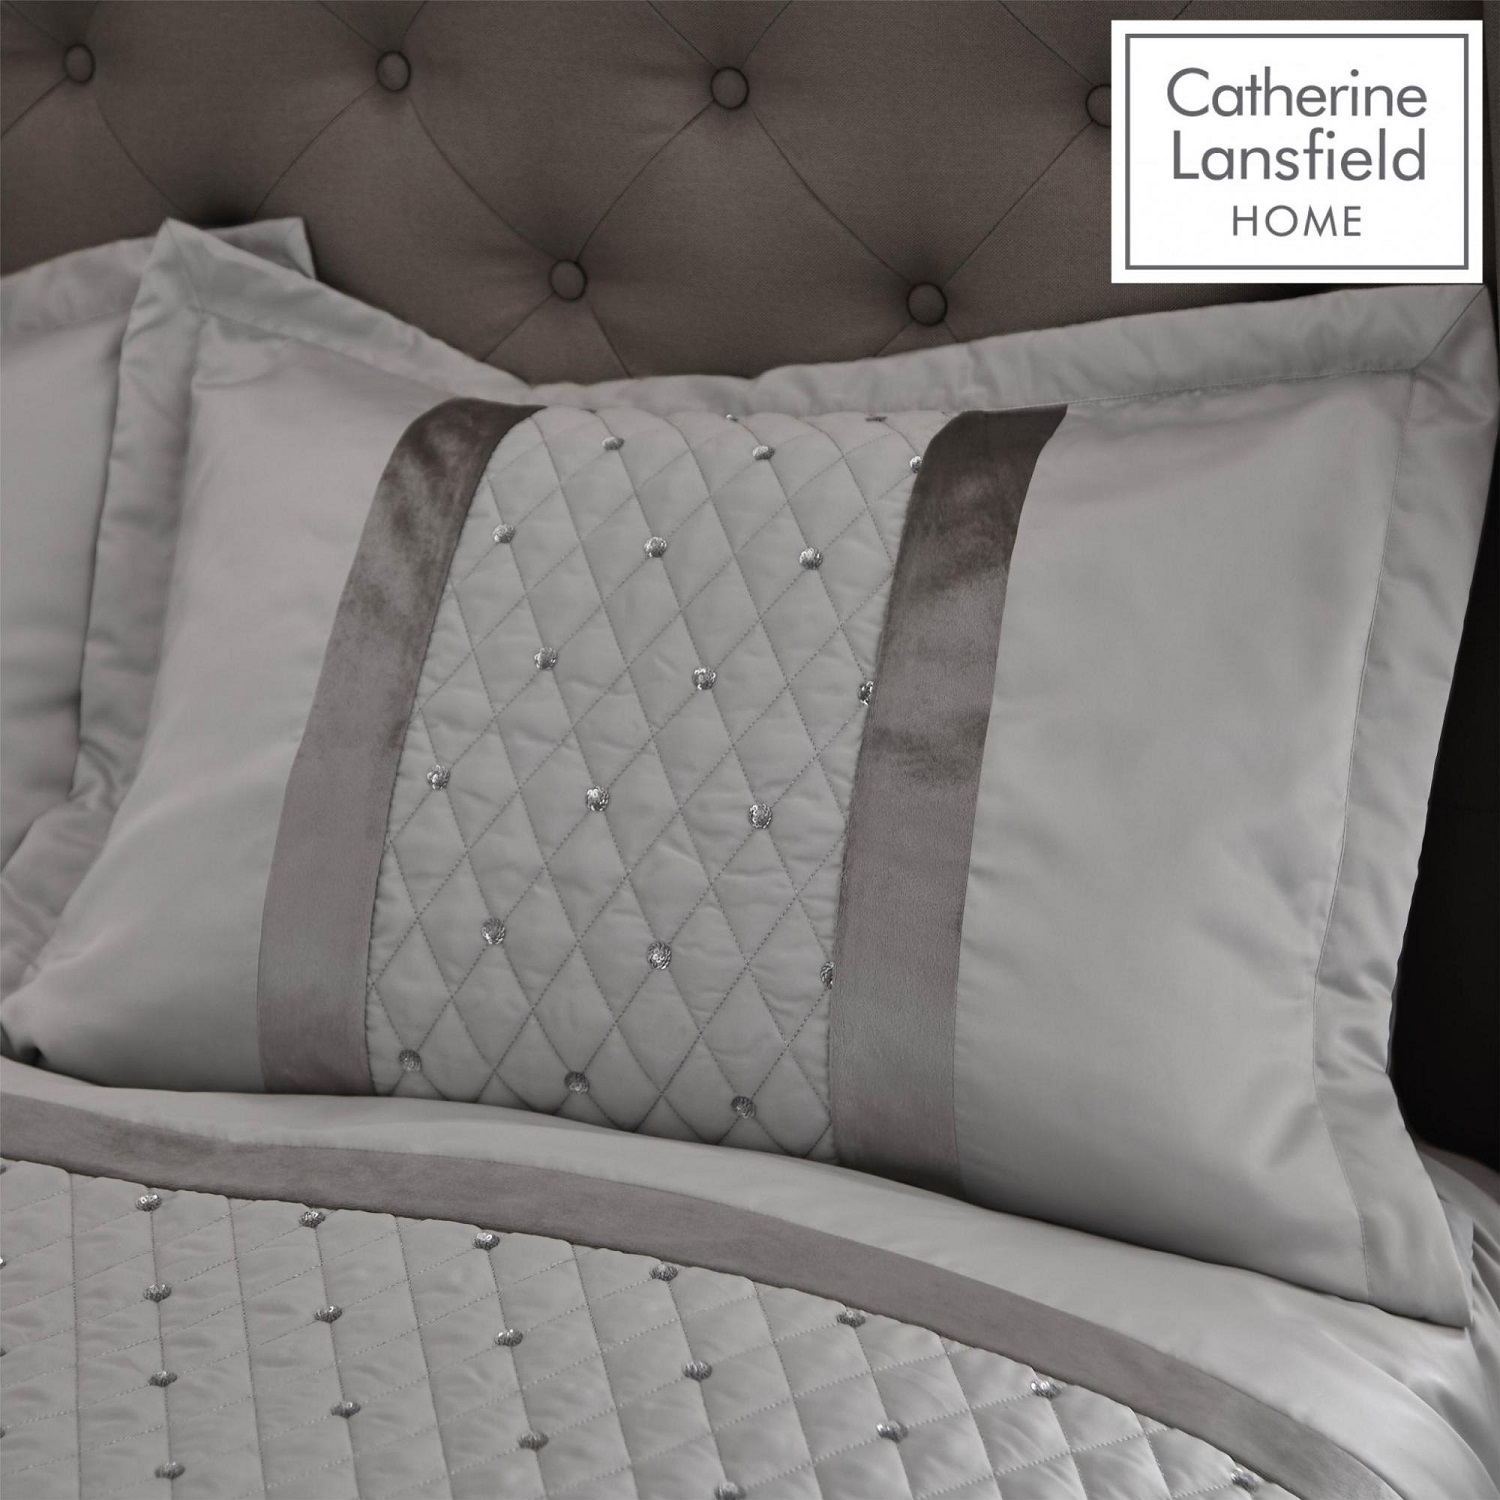 2 X Catherine Lansfield Sequin Cluster Silver Grey Pillow Shams Covers Cases New Ebay